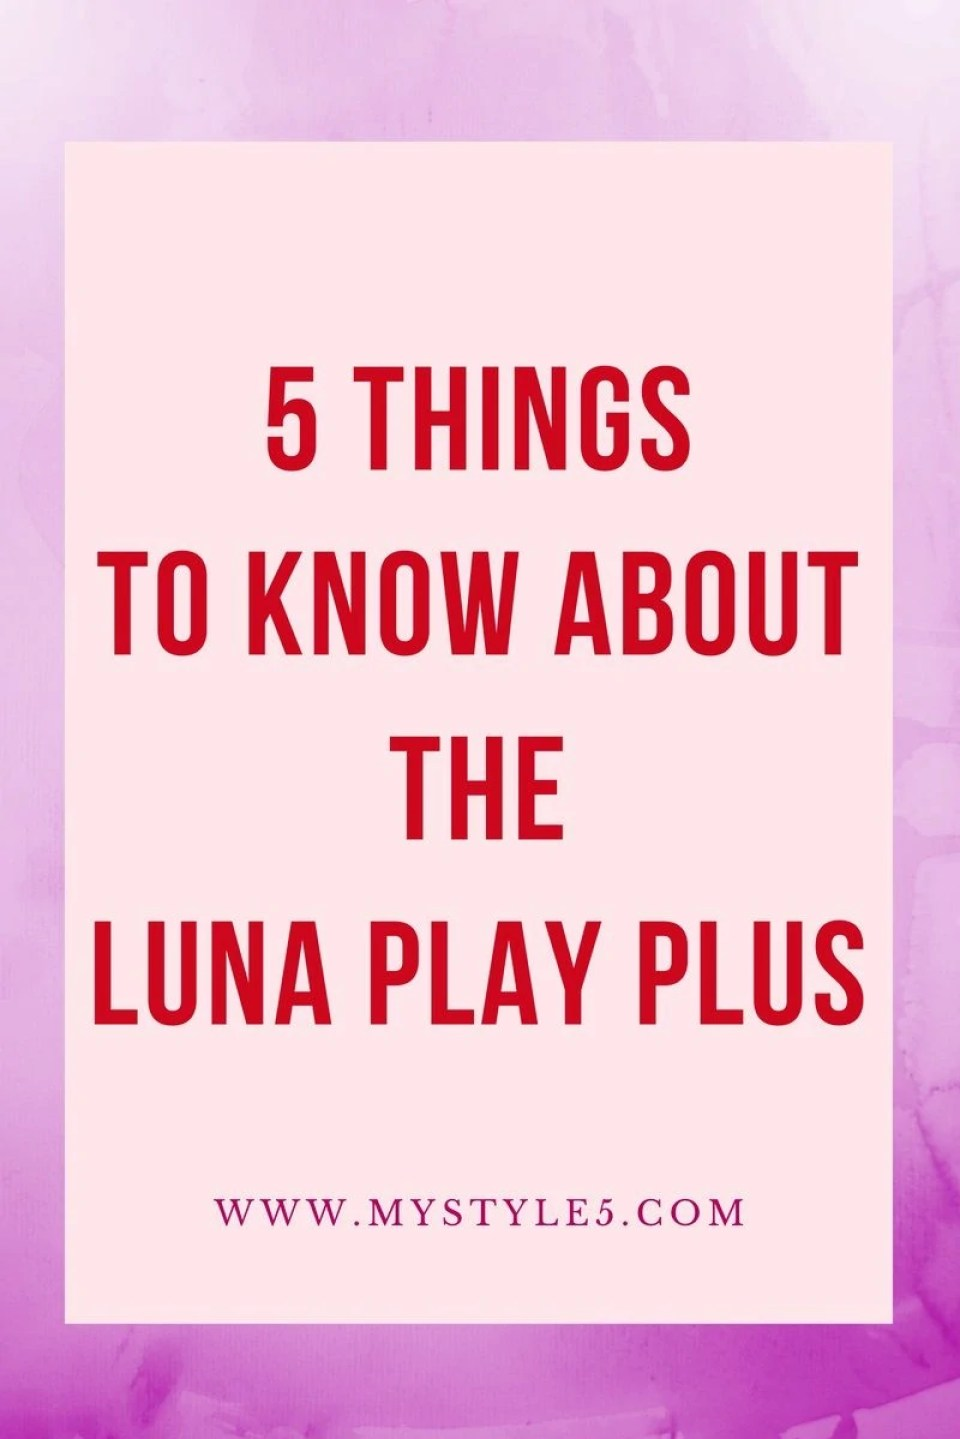 5 Things to Know About the LUNA Play Plus